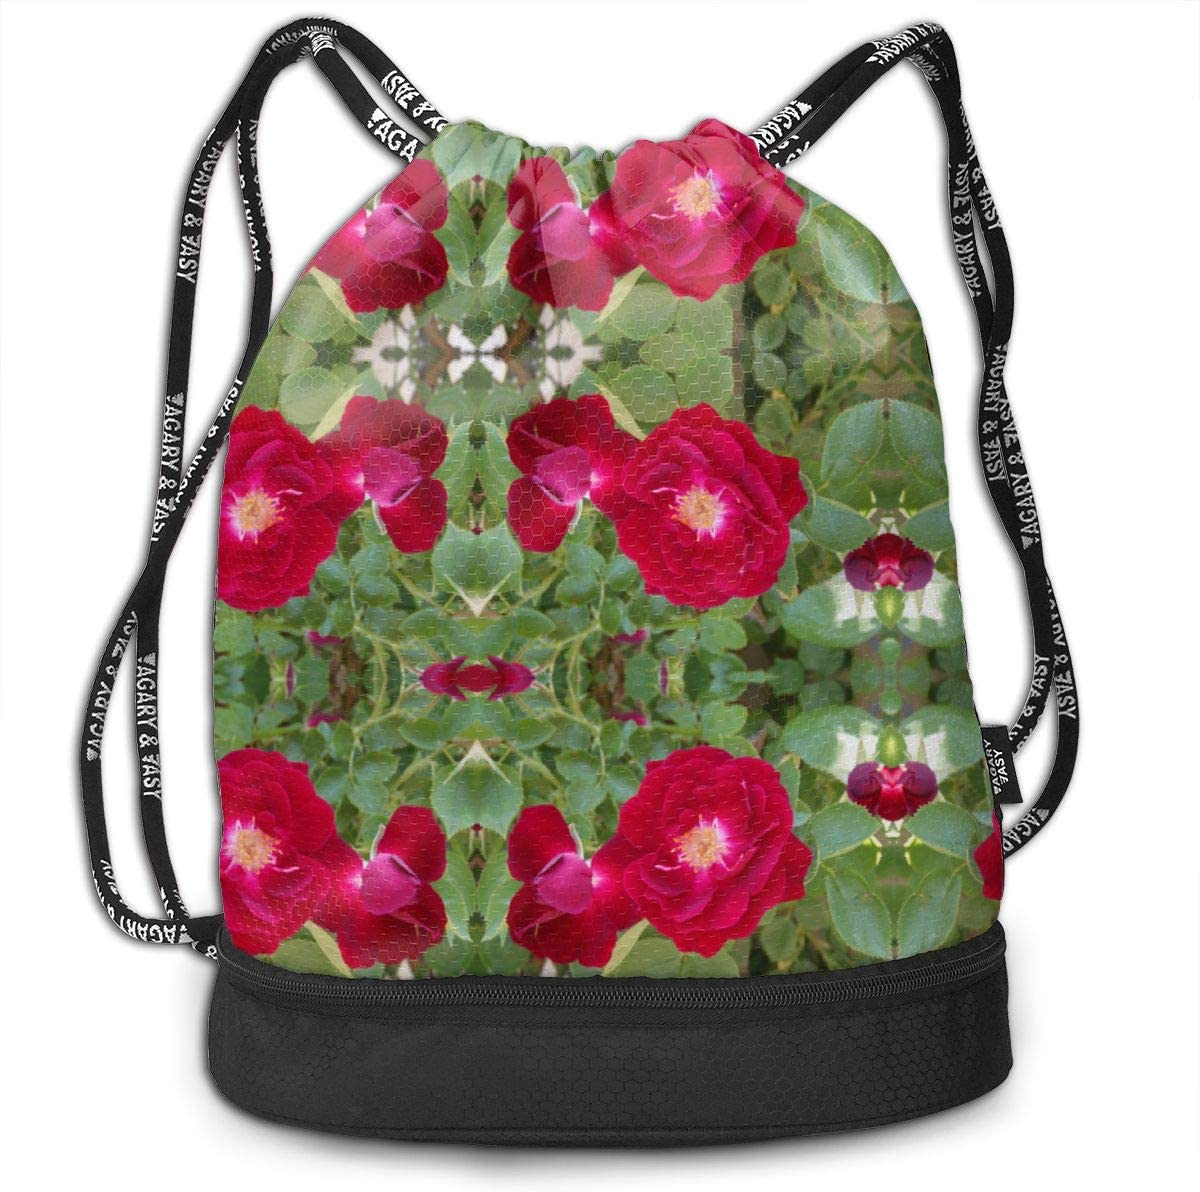 Red Rose Drawstring Backpack Sports Athletic Gym Cinch Sack String Storage Bags for Hiking Travel Beach